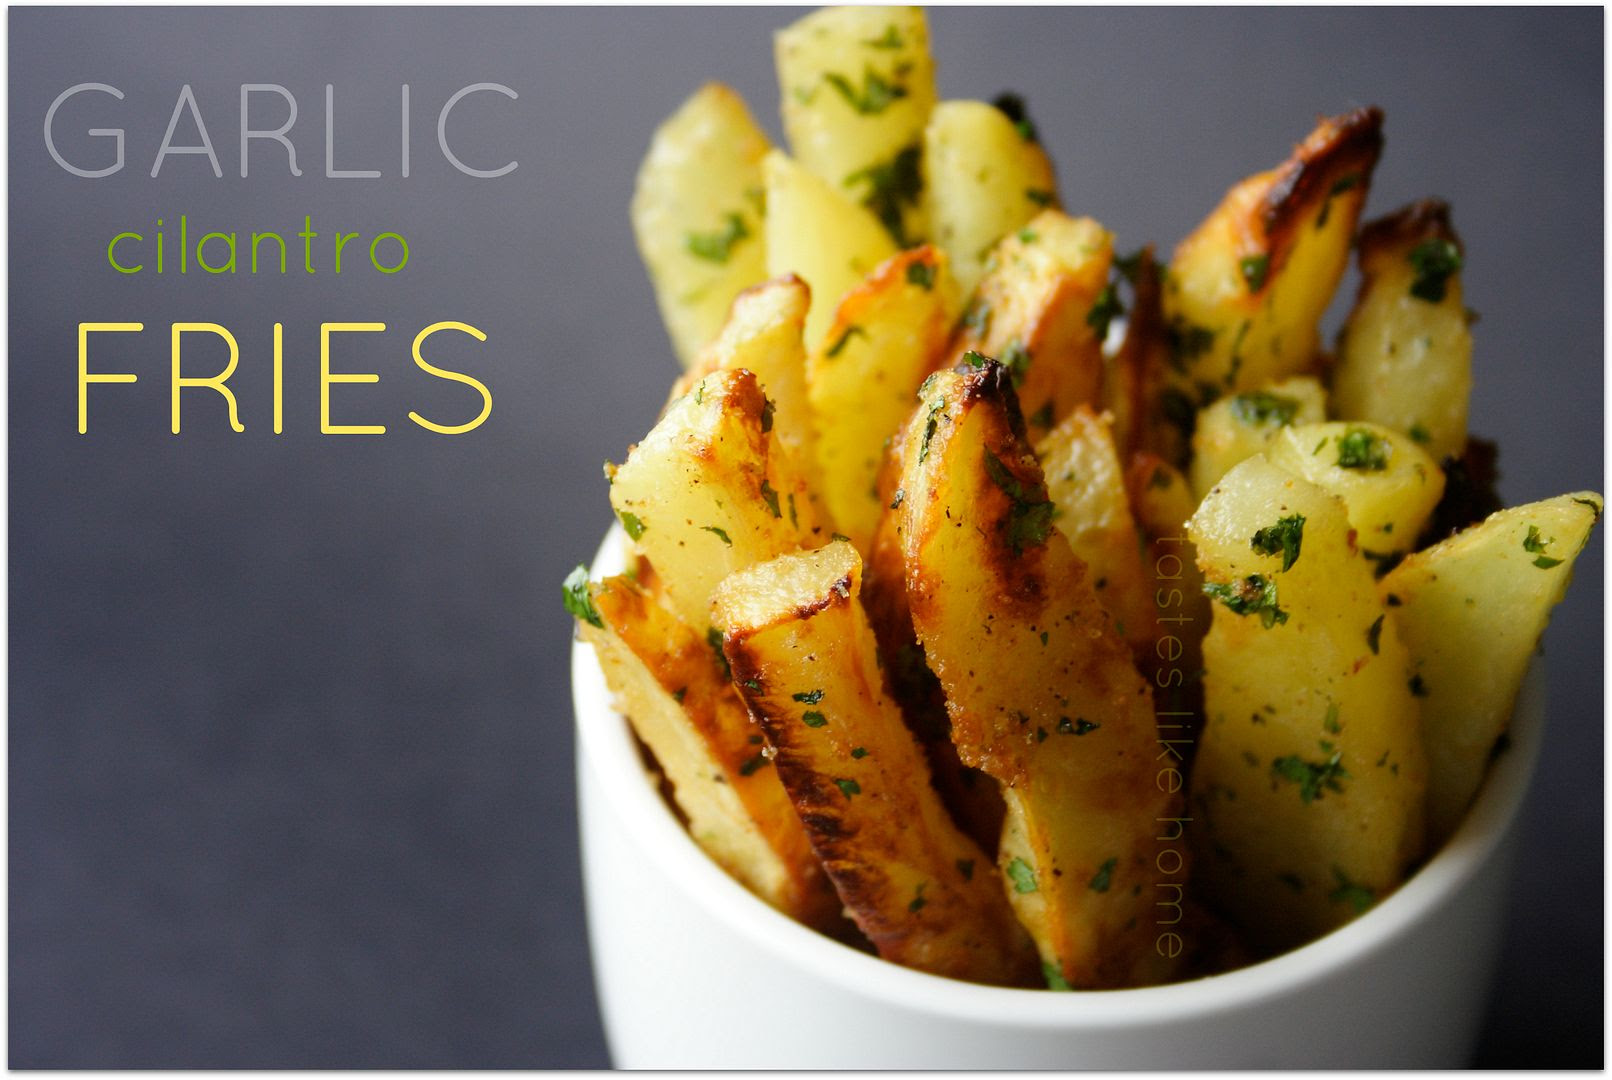 Garlic Cilantro Fries